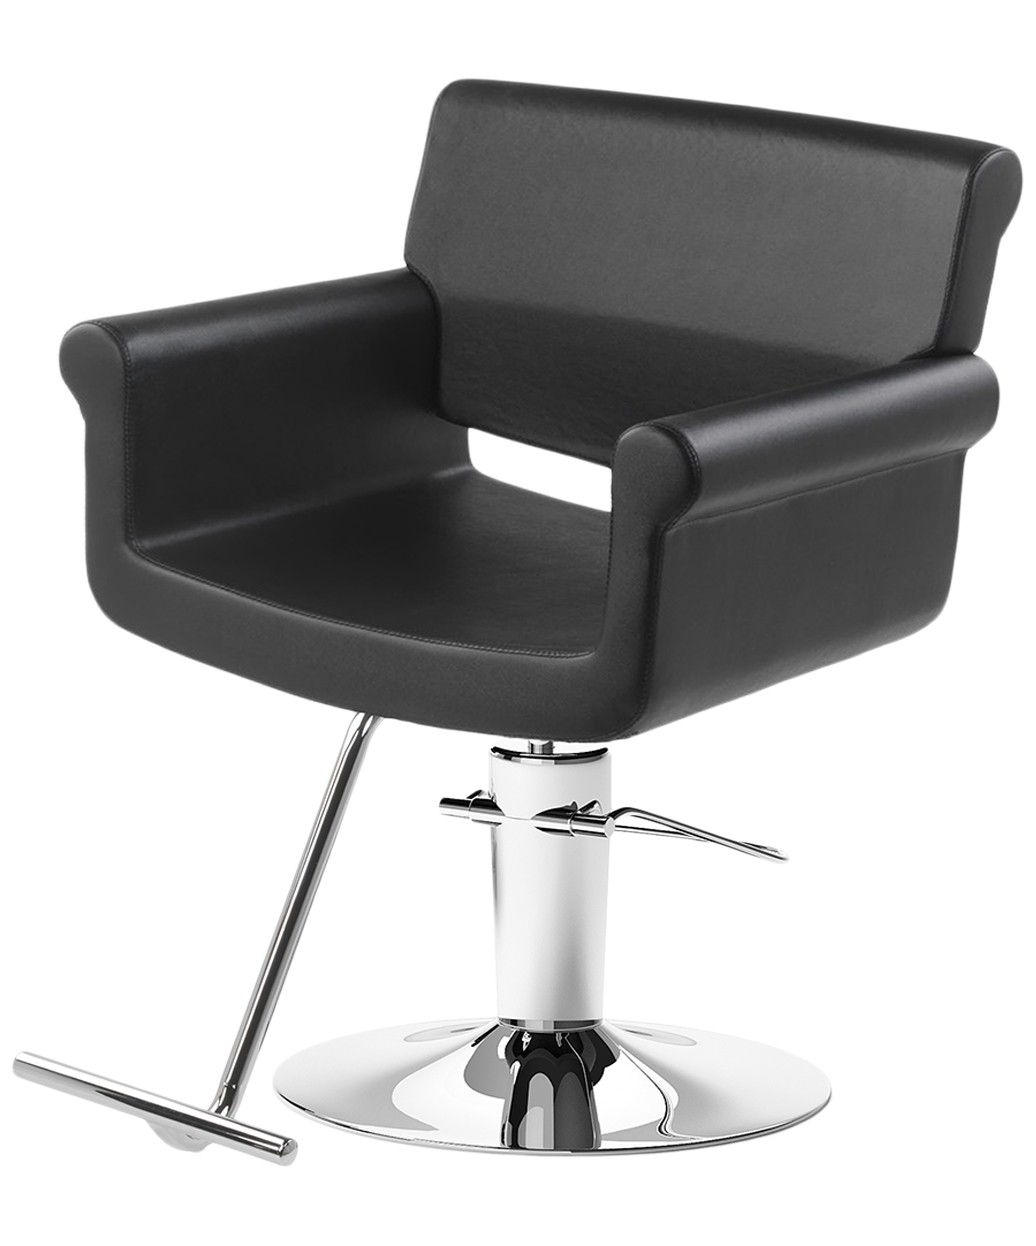 Belvedere Monique Styling Chair